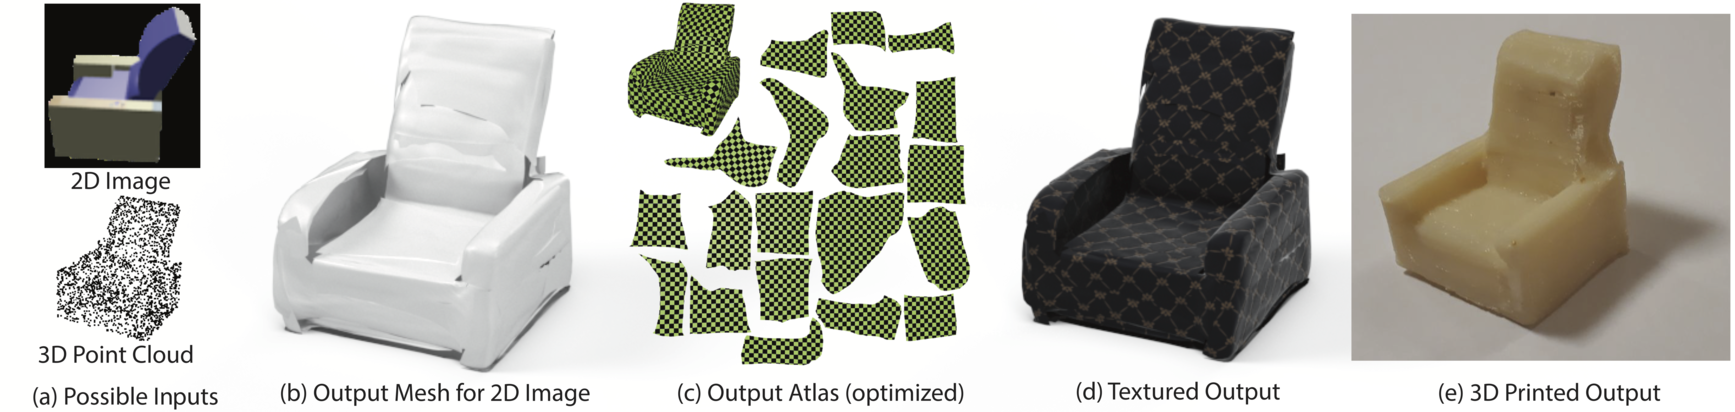 AtlasNet: A Papier-Mâché Approach to Learning 3D Surface